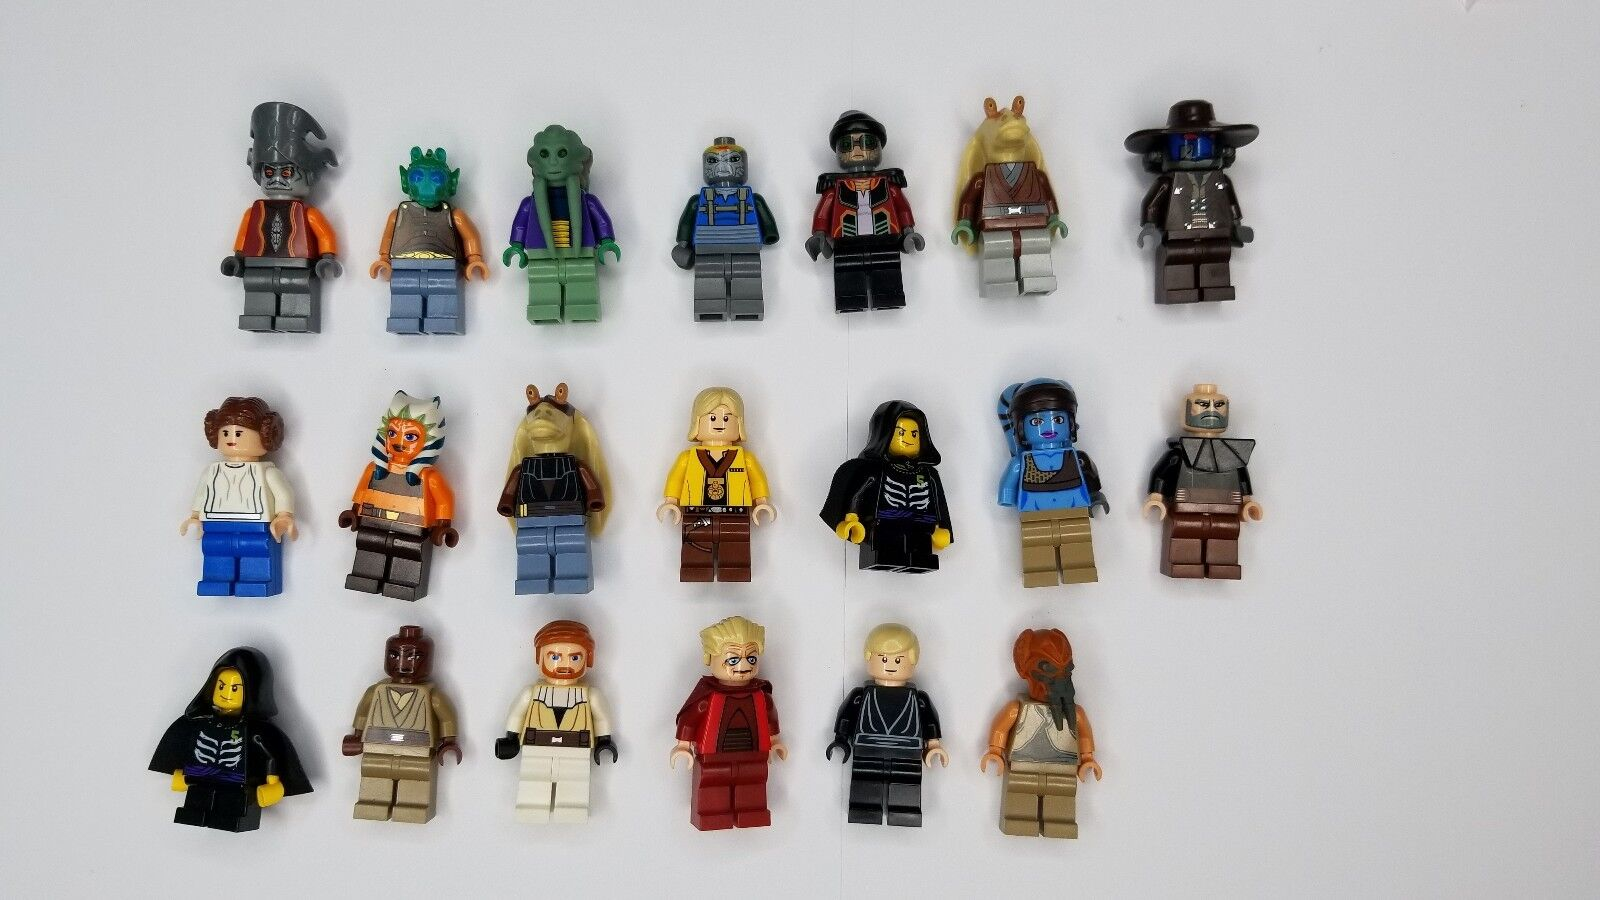 Lego Star Wars Varied Minifigures